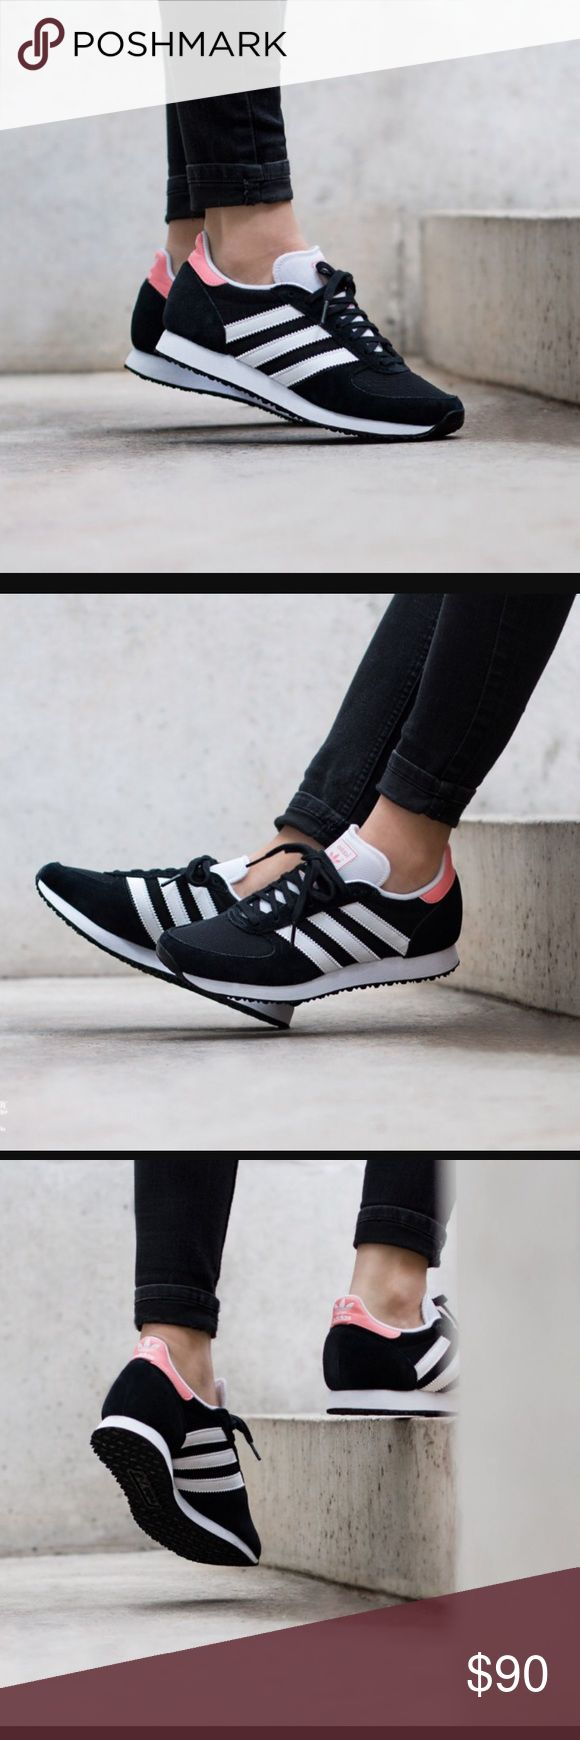 Brand new adidas ZX racer for women Brand new adidas ZX racer for women. Various sizes. No LOWBALL please! Negotiable Adidas Shoes Sneakers